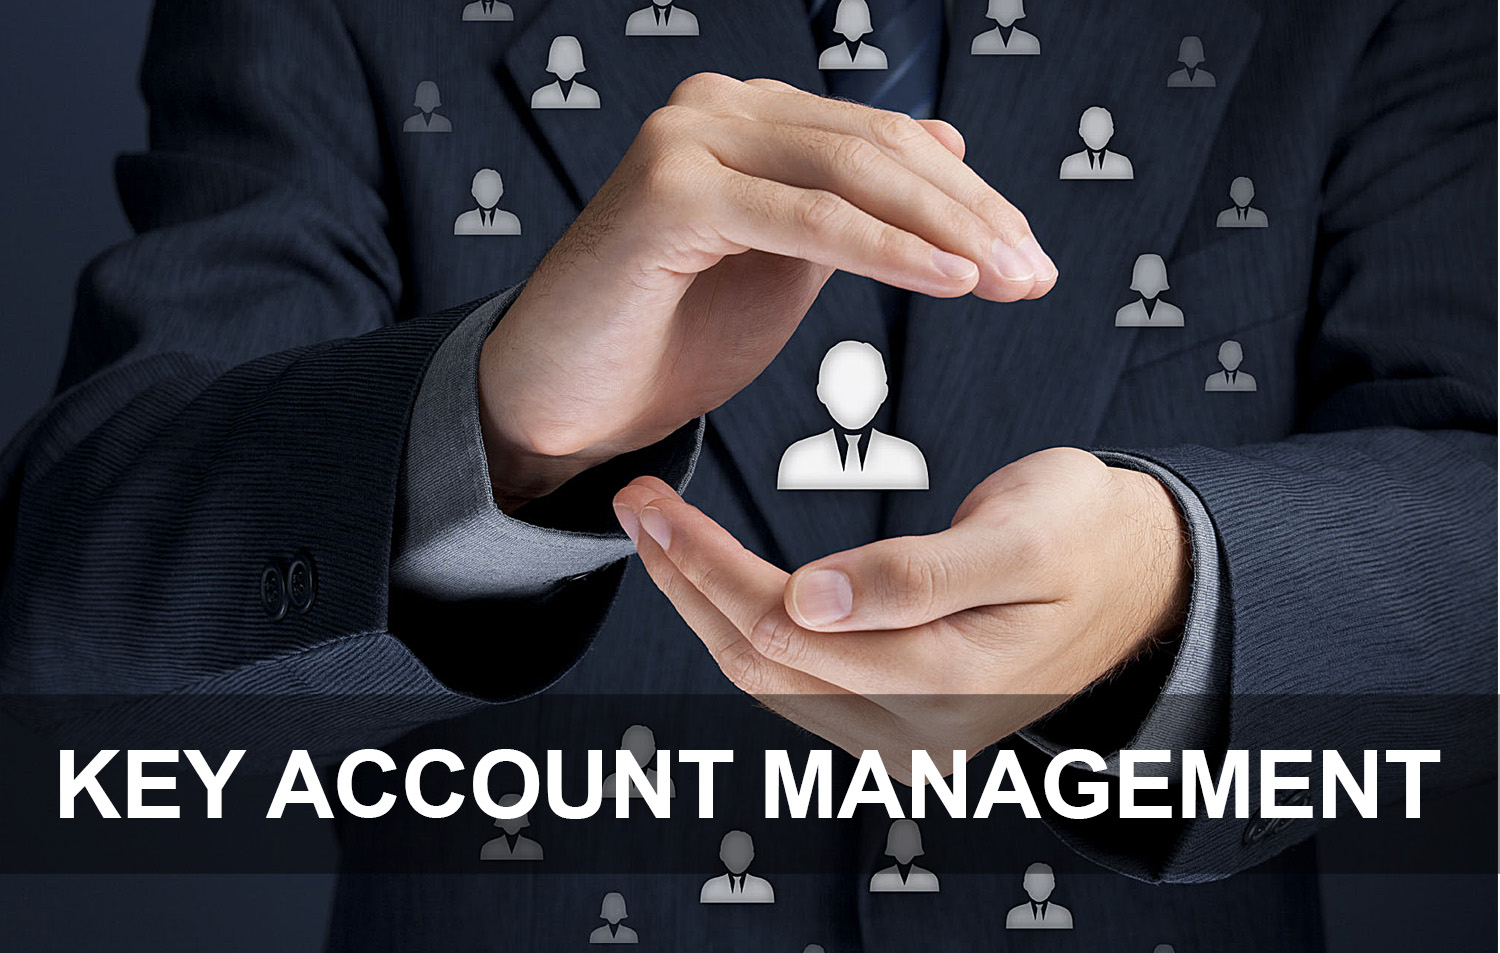 Key Account Management - PNI.jpg